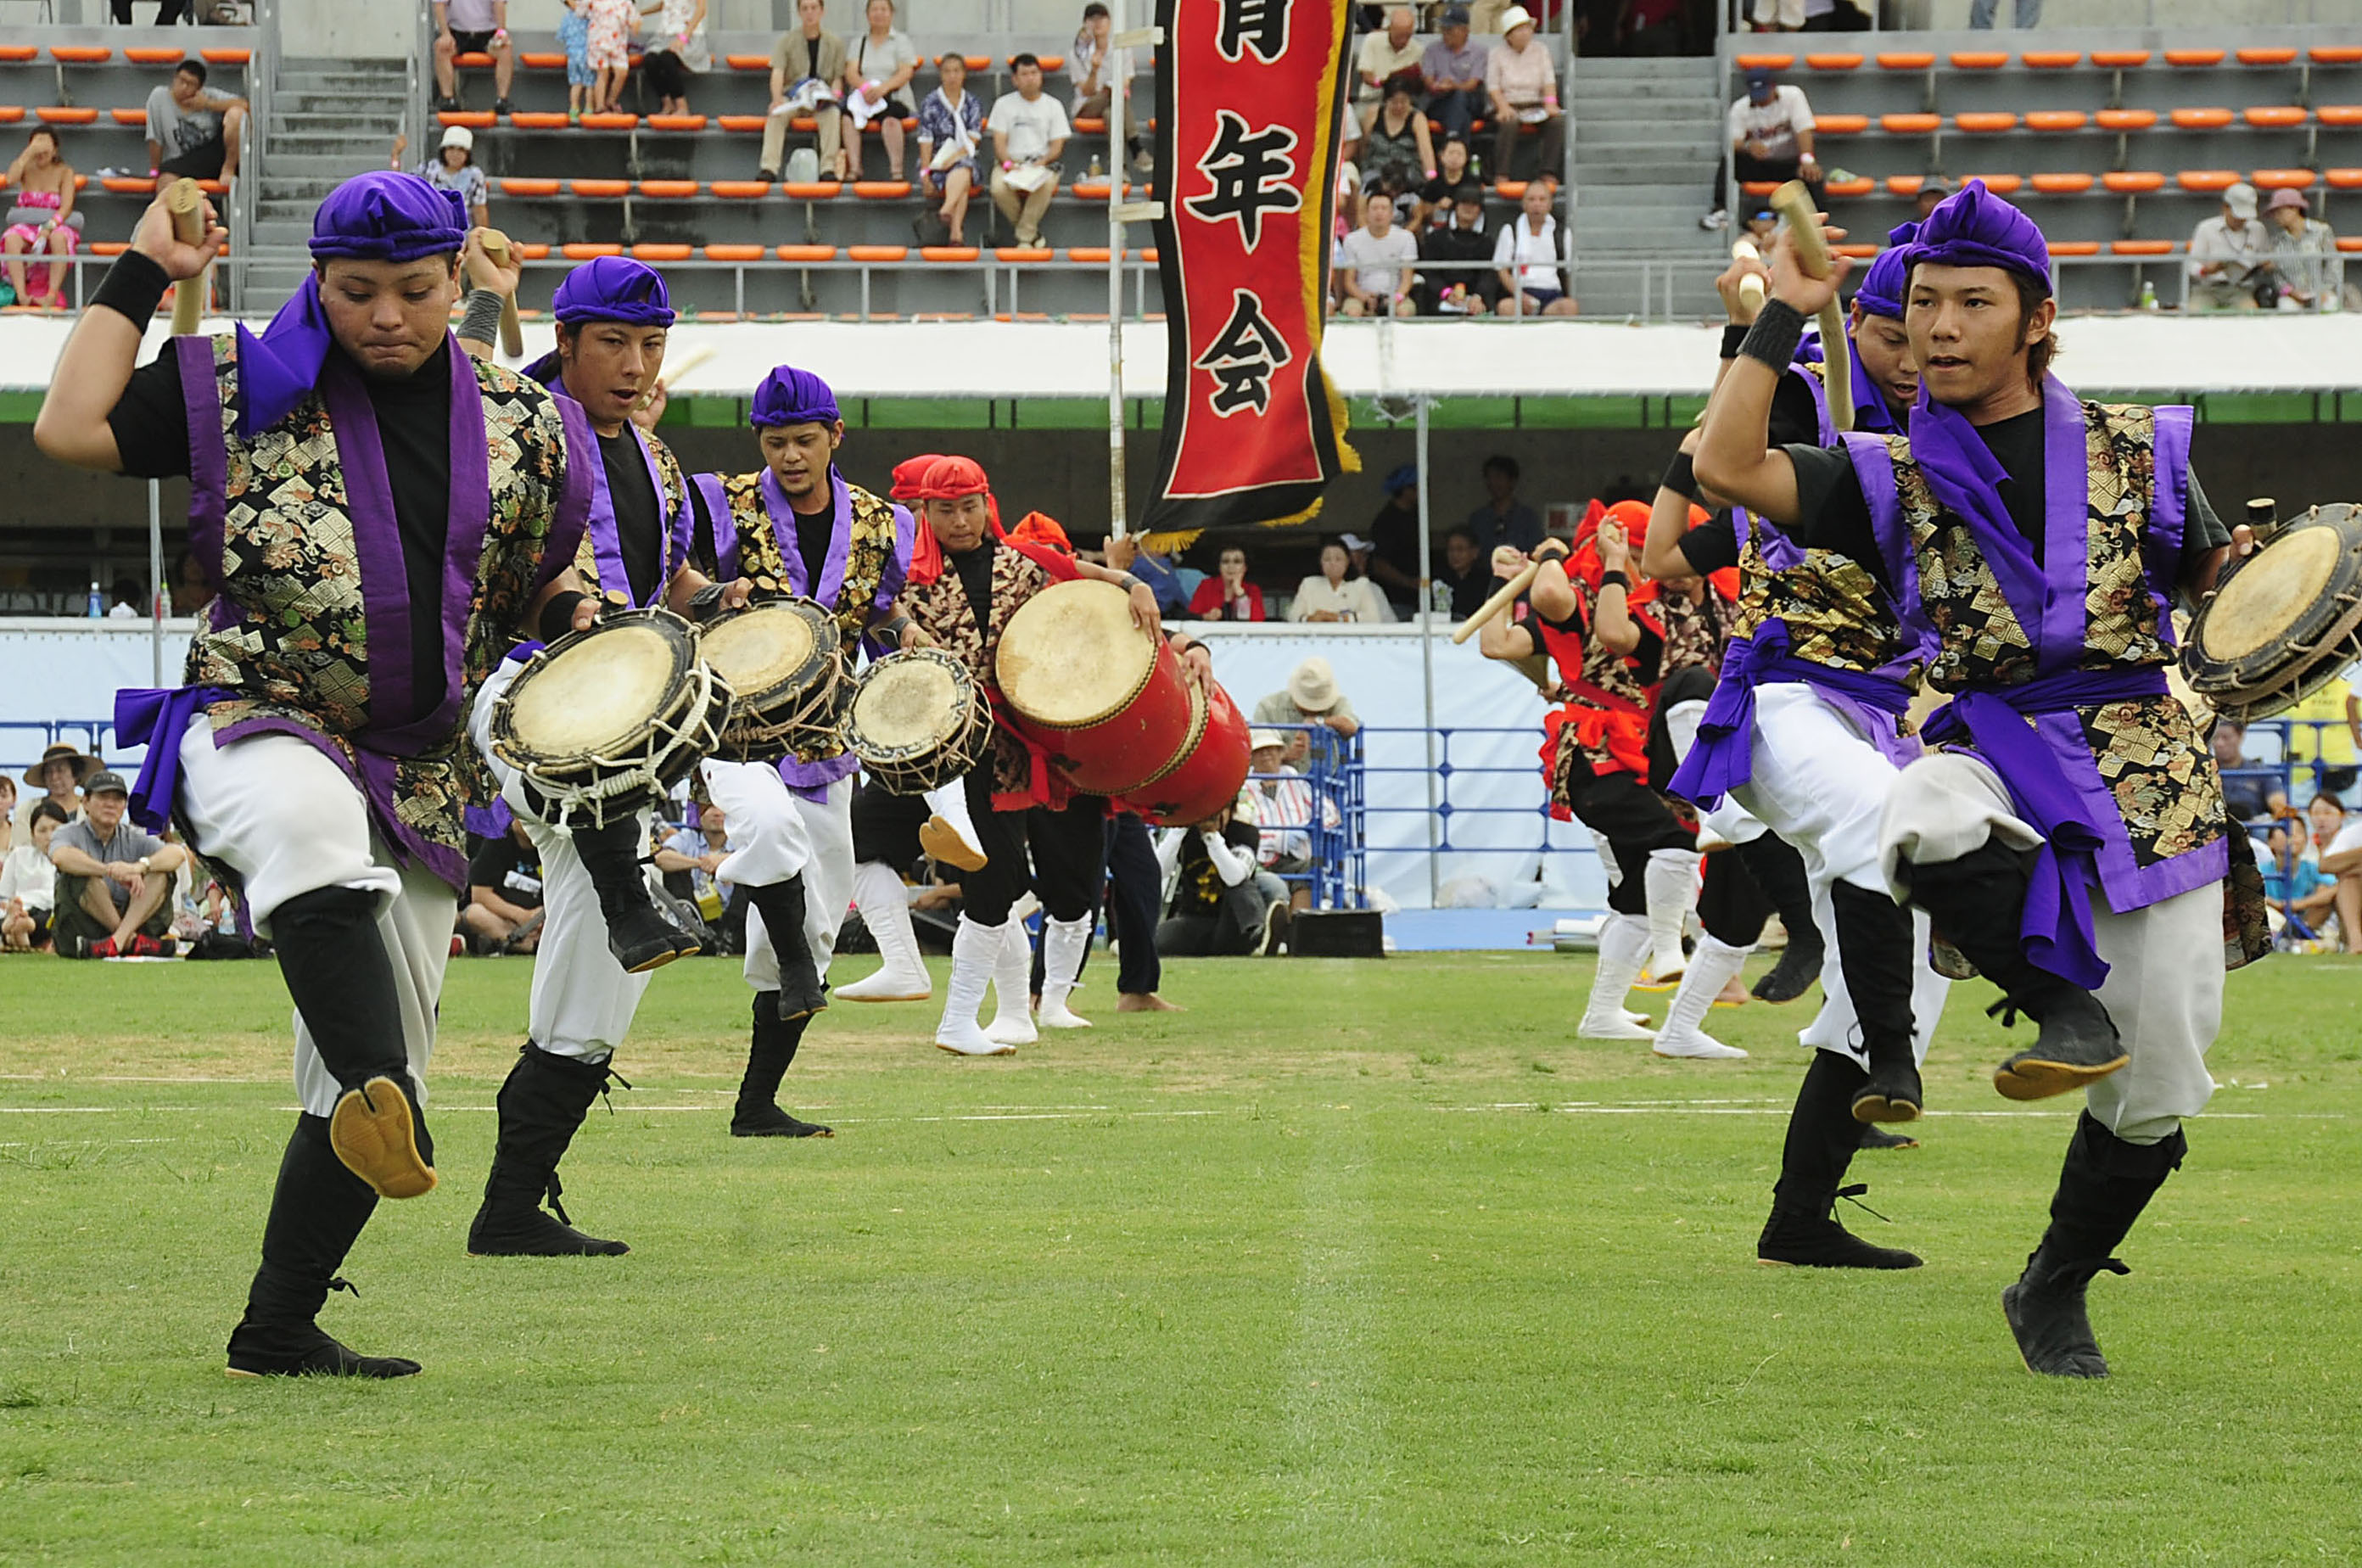 A Taiko drum group performs for the crowd during the 58th Okinawa Zento Eisa Festival in Koza Athletic Park.